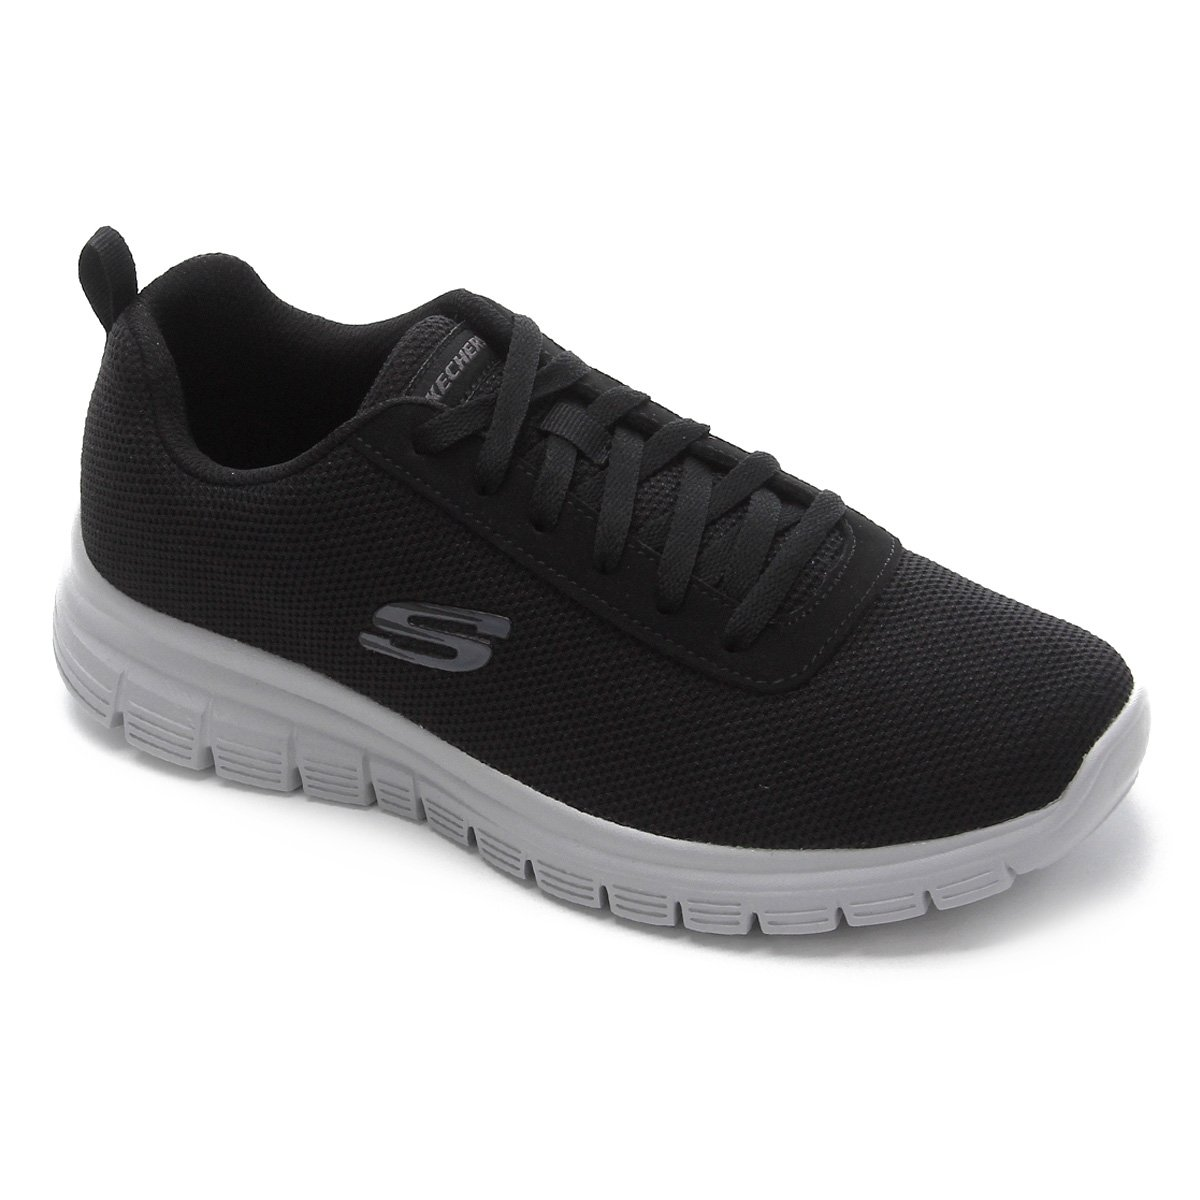 Tênis Skechers Burns Brantley